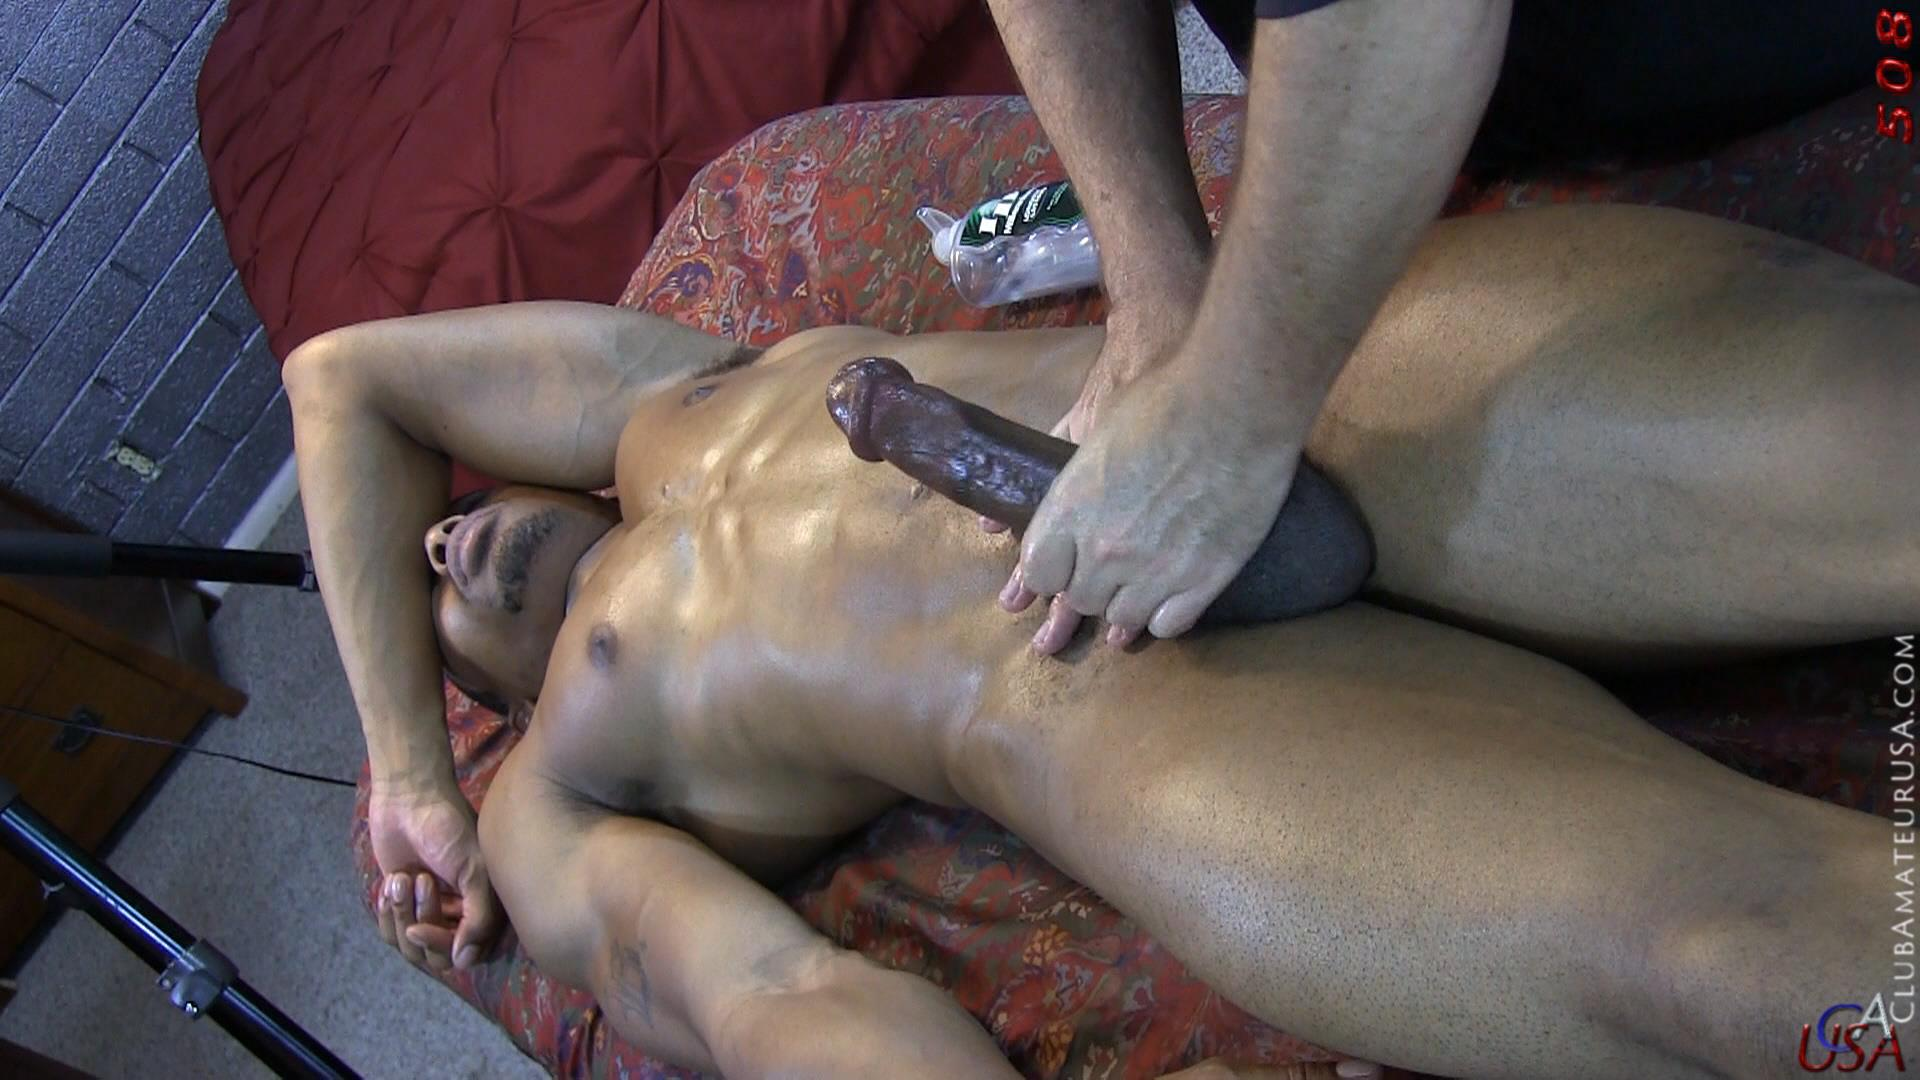 Club-Amateur-USA-Gracen-Straight-Big-Black-Cock-Getting-Sucked-With-Cum-Amateur-Gay-Porn-48 Straight Ghetto Thug Gets A Massage With A Happy Ending From A Guy